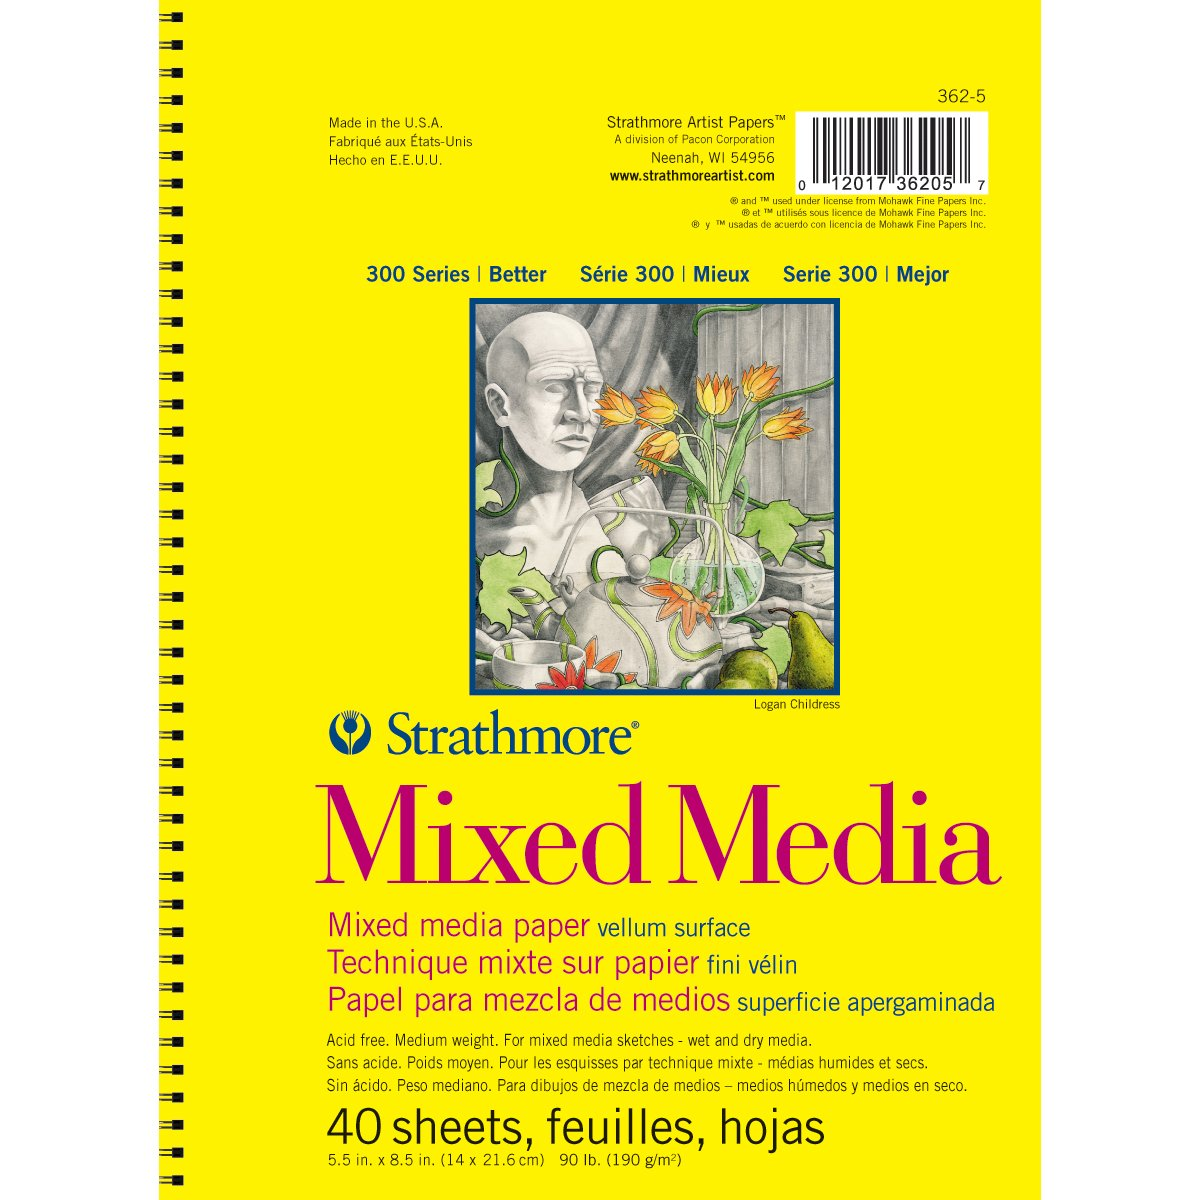 Strathmore 90 lb 40 Sheets Mixed Media Vellum Paper Pad, 5.5 x 8.5 5.5 x 8.5 Pro-Art 362-5